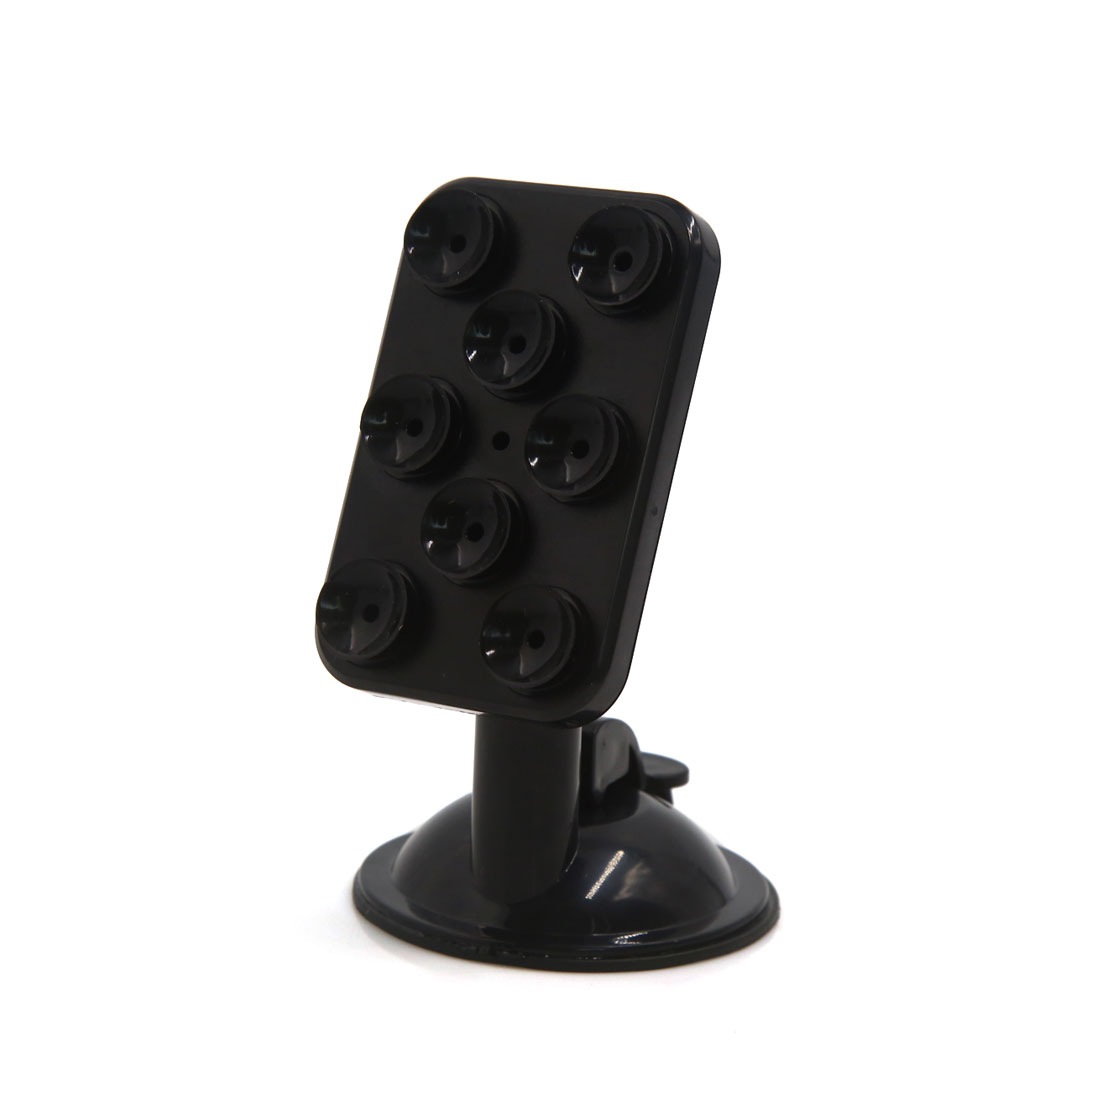 Universal Windscreen Mount 8 Suction Cups Design Phone Mobile Holder Black